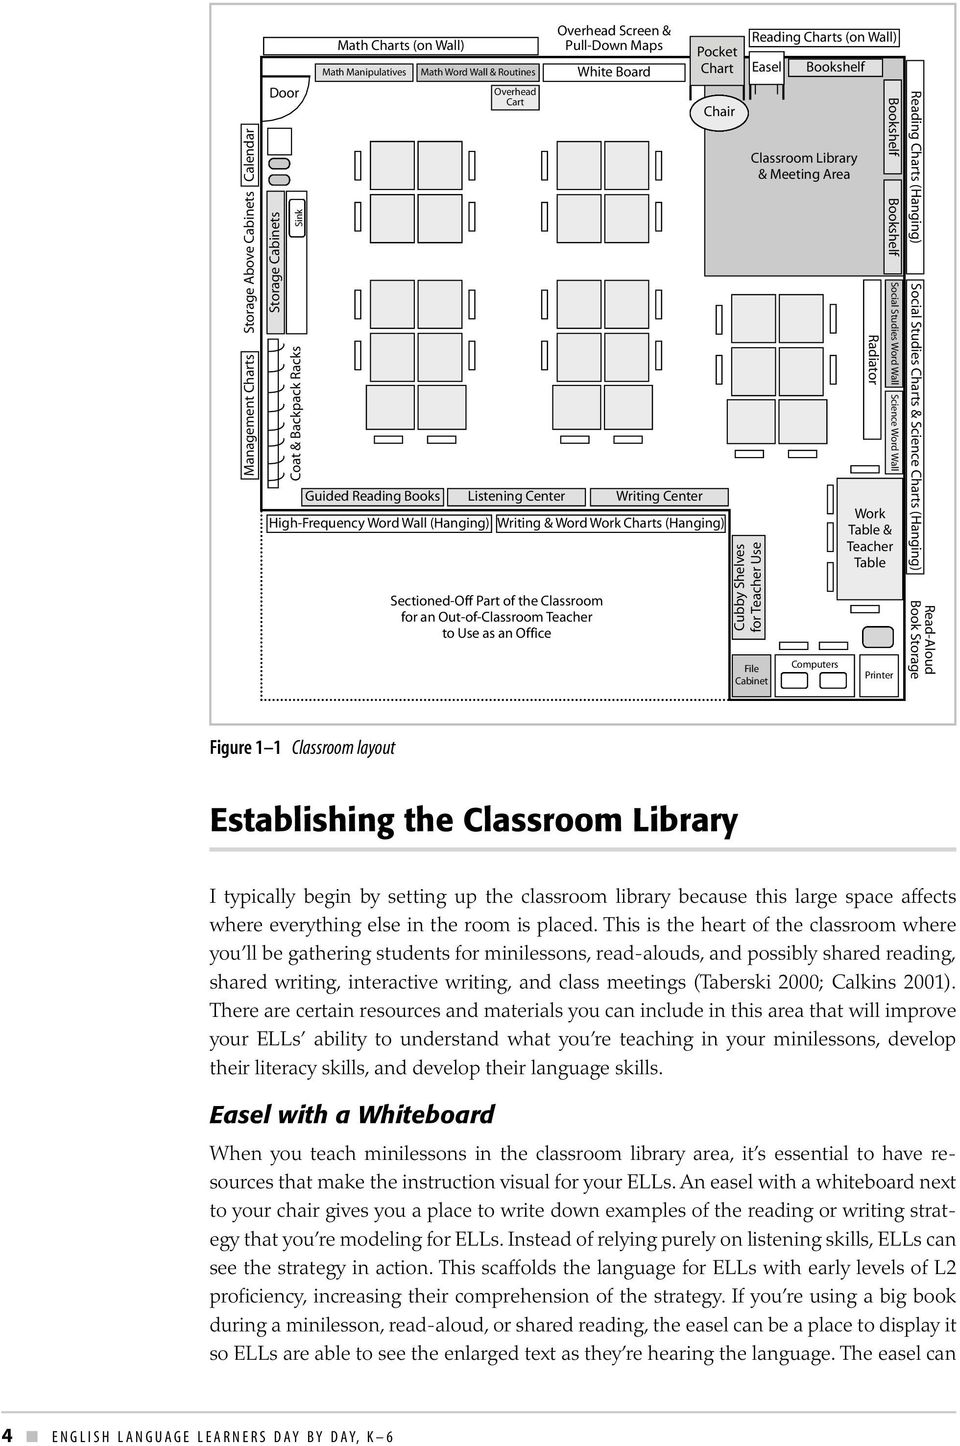 Overhead Screen & Pull-Down Maps White Board Pocket Chart Chair Cubby Shelves for Teacher Use Classroom Library & Meeting Area File Cabinet Reading Charts (on Wall) Easel Bookshelf Computers Radiator